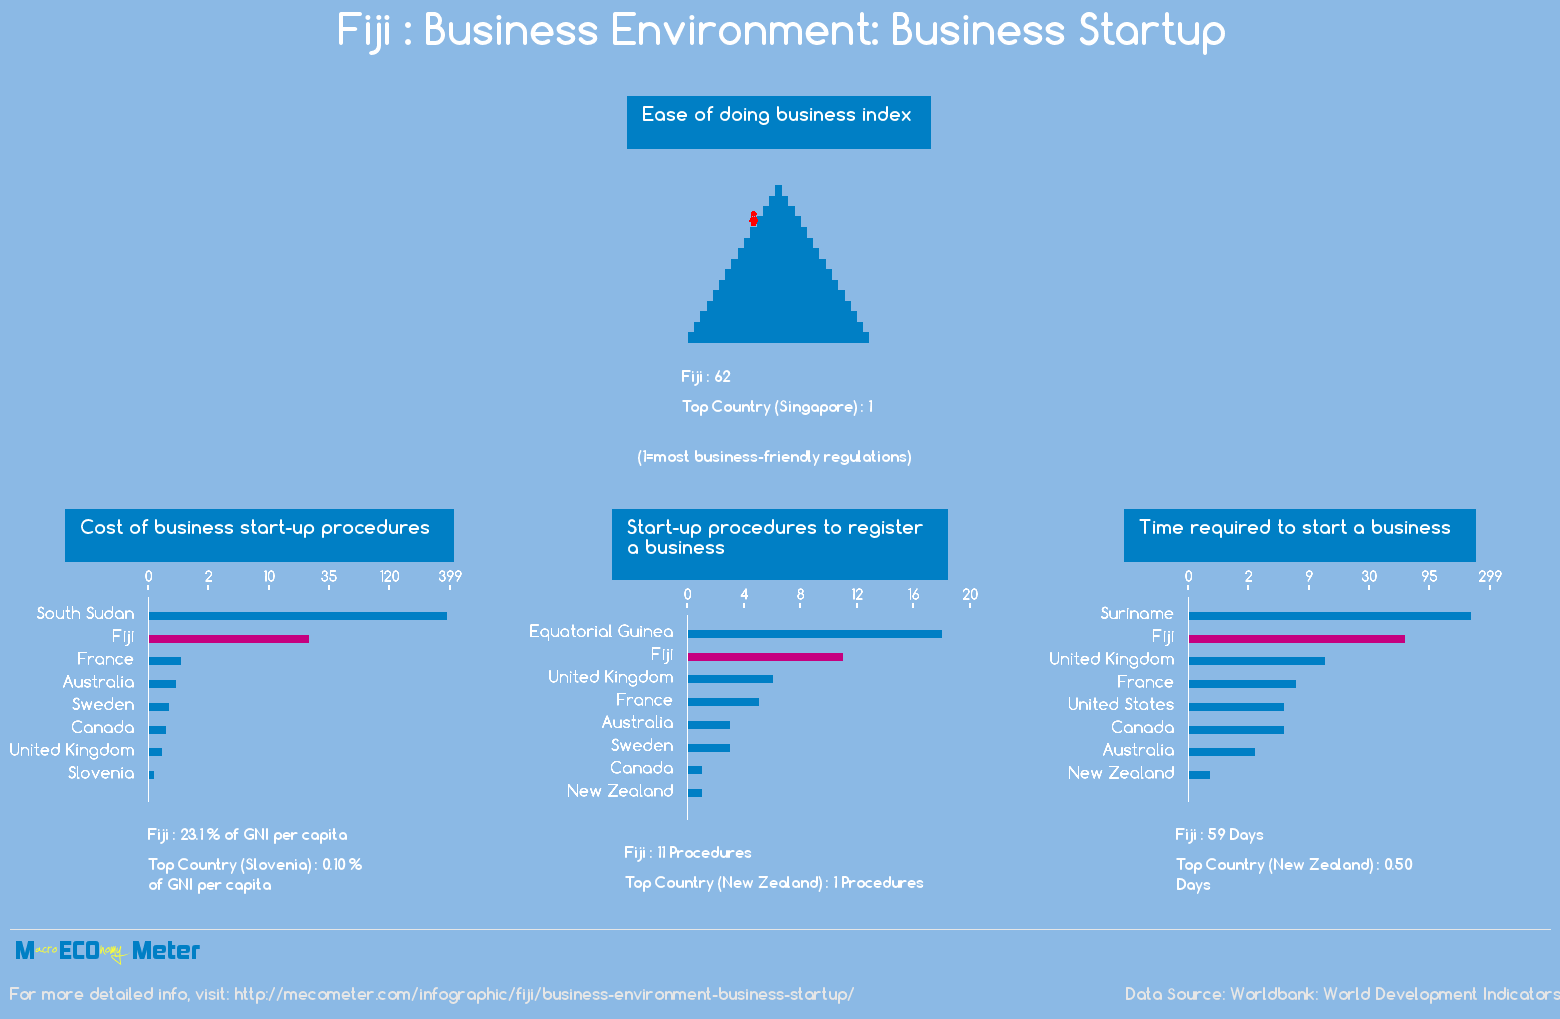 Fiji : Business Environment: Business Startup